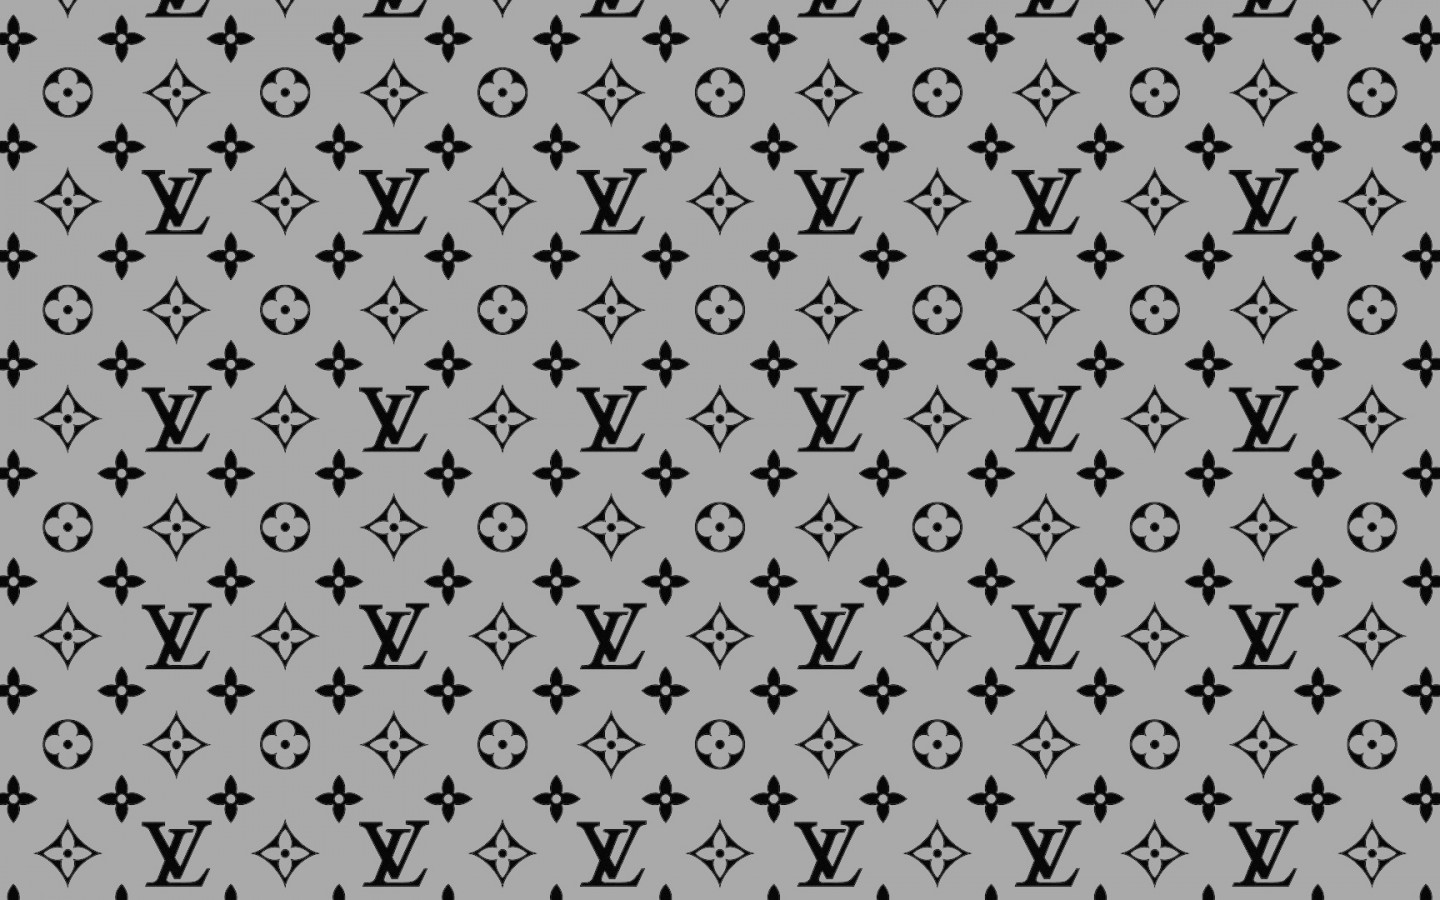 Louis vuitton wallpaper 16084 1440x900 px hdwallsource louis vuitton wallpaper 16084 voltagebd Choice Image